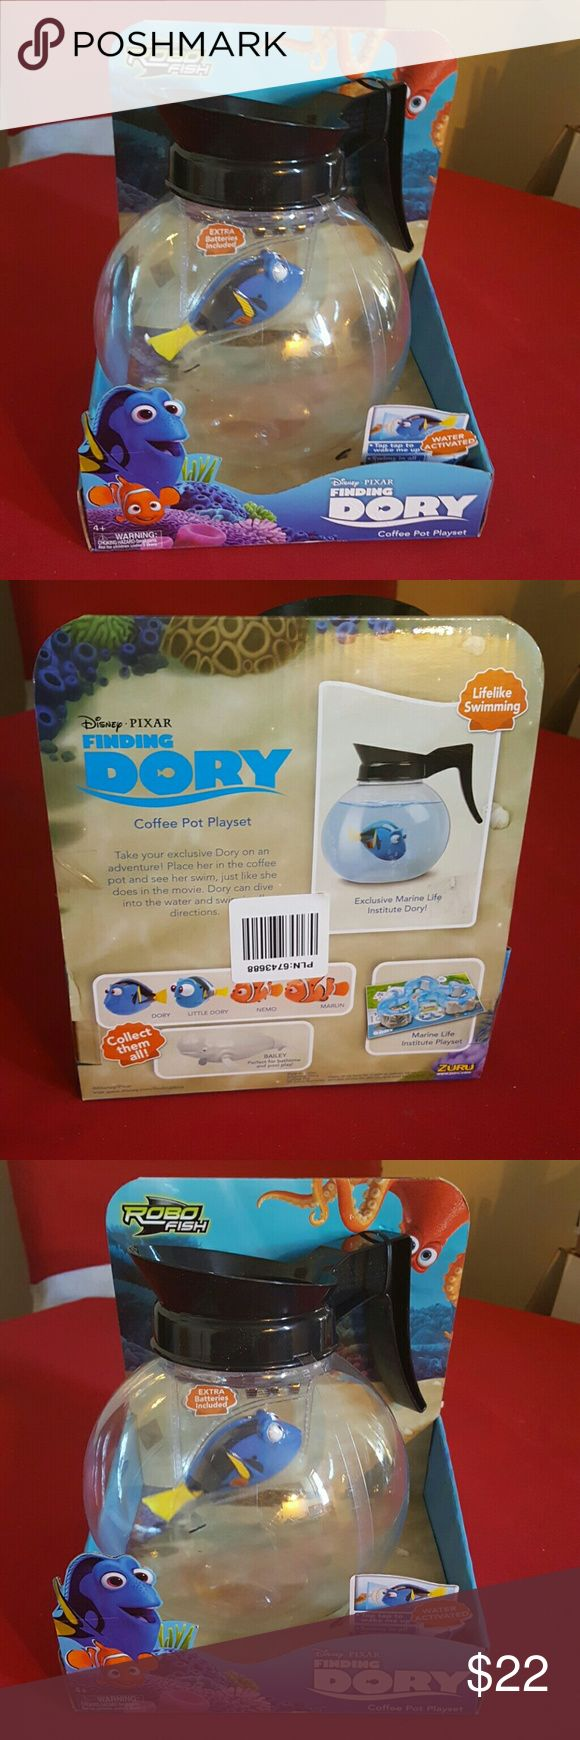 robo fish finding dory fish tank pot really cute this is a new item it's a cute coffee pot playset comes with a extra set of batteries fish swims around in plastic coffee pot it's water activated ages 4 and up please thanks for looking have a wonderful day & Other Stories Other